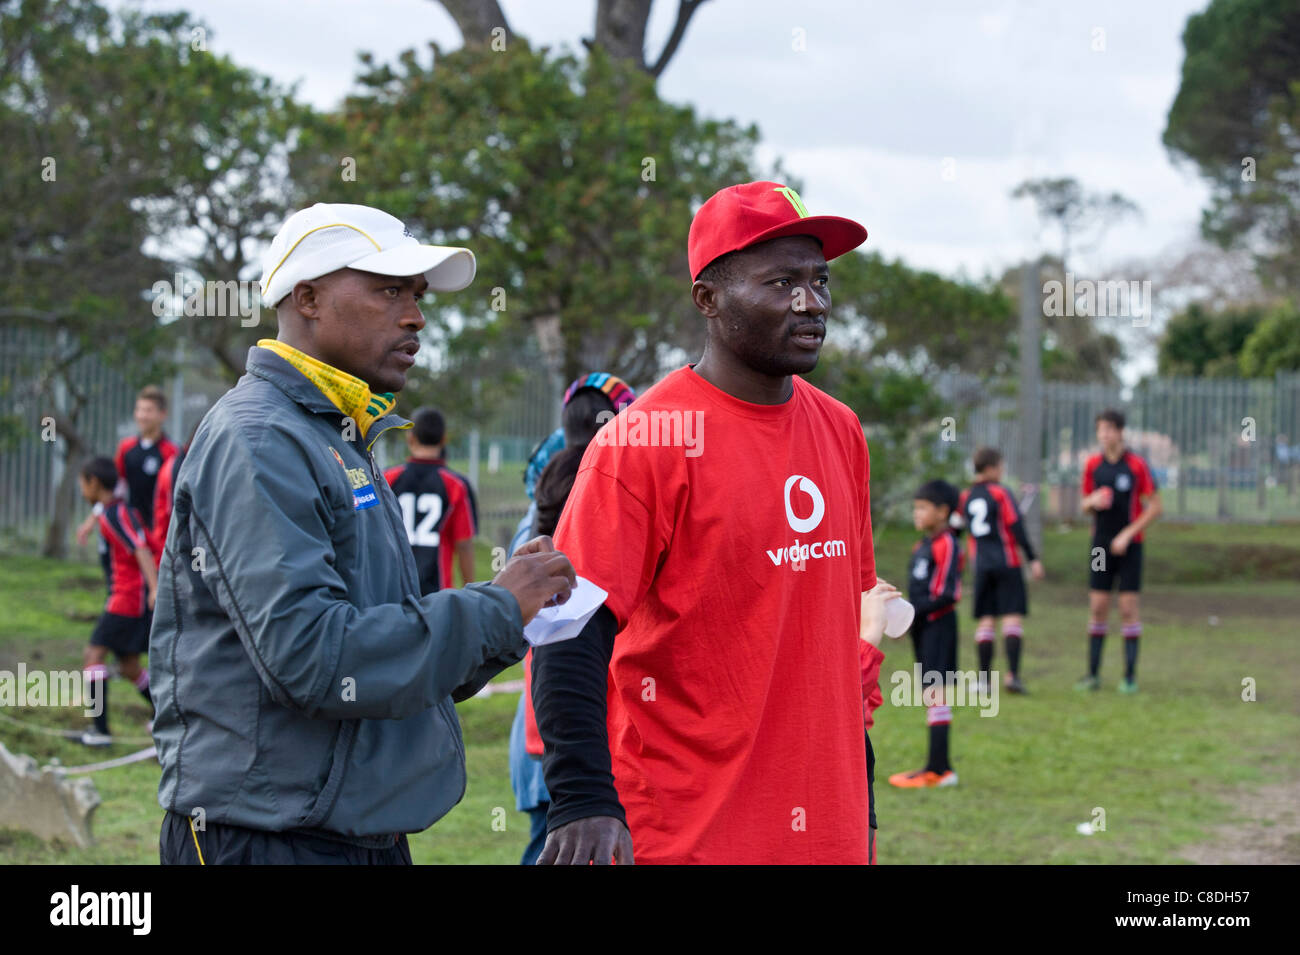 Football coaches watching a match of a youth team in Cape Town South Africa - Stock Image